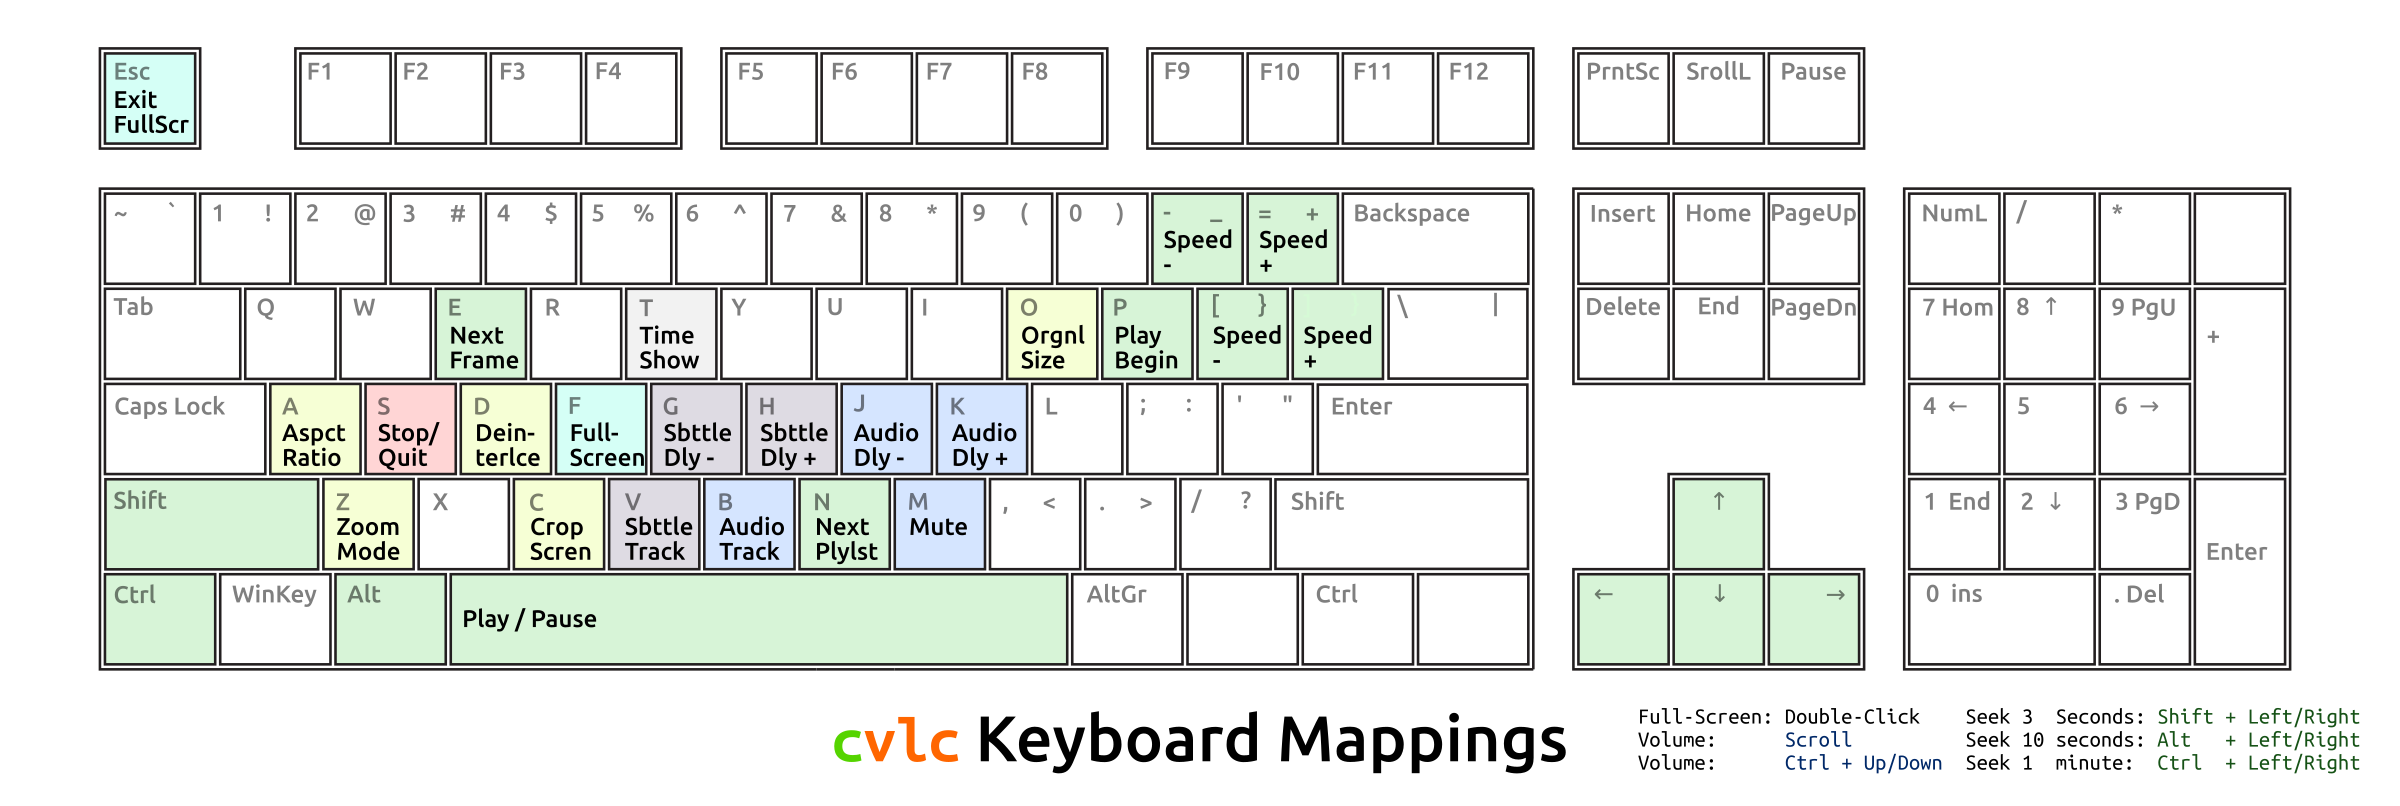 Keyboard mappings for clvc by Todd Partridge - Gen2ly